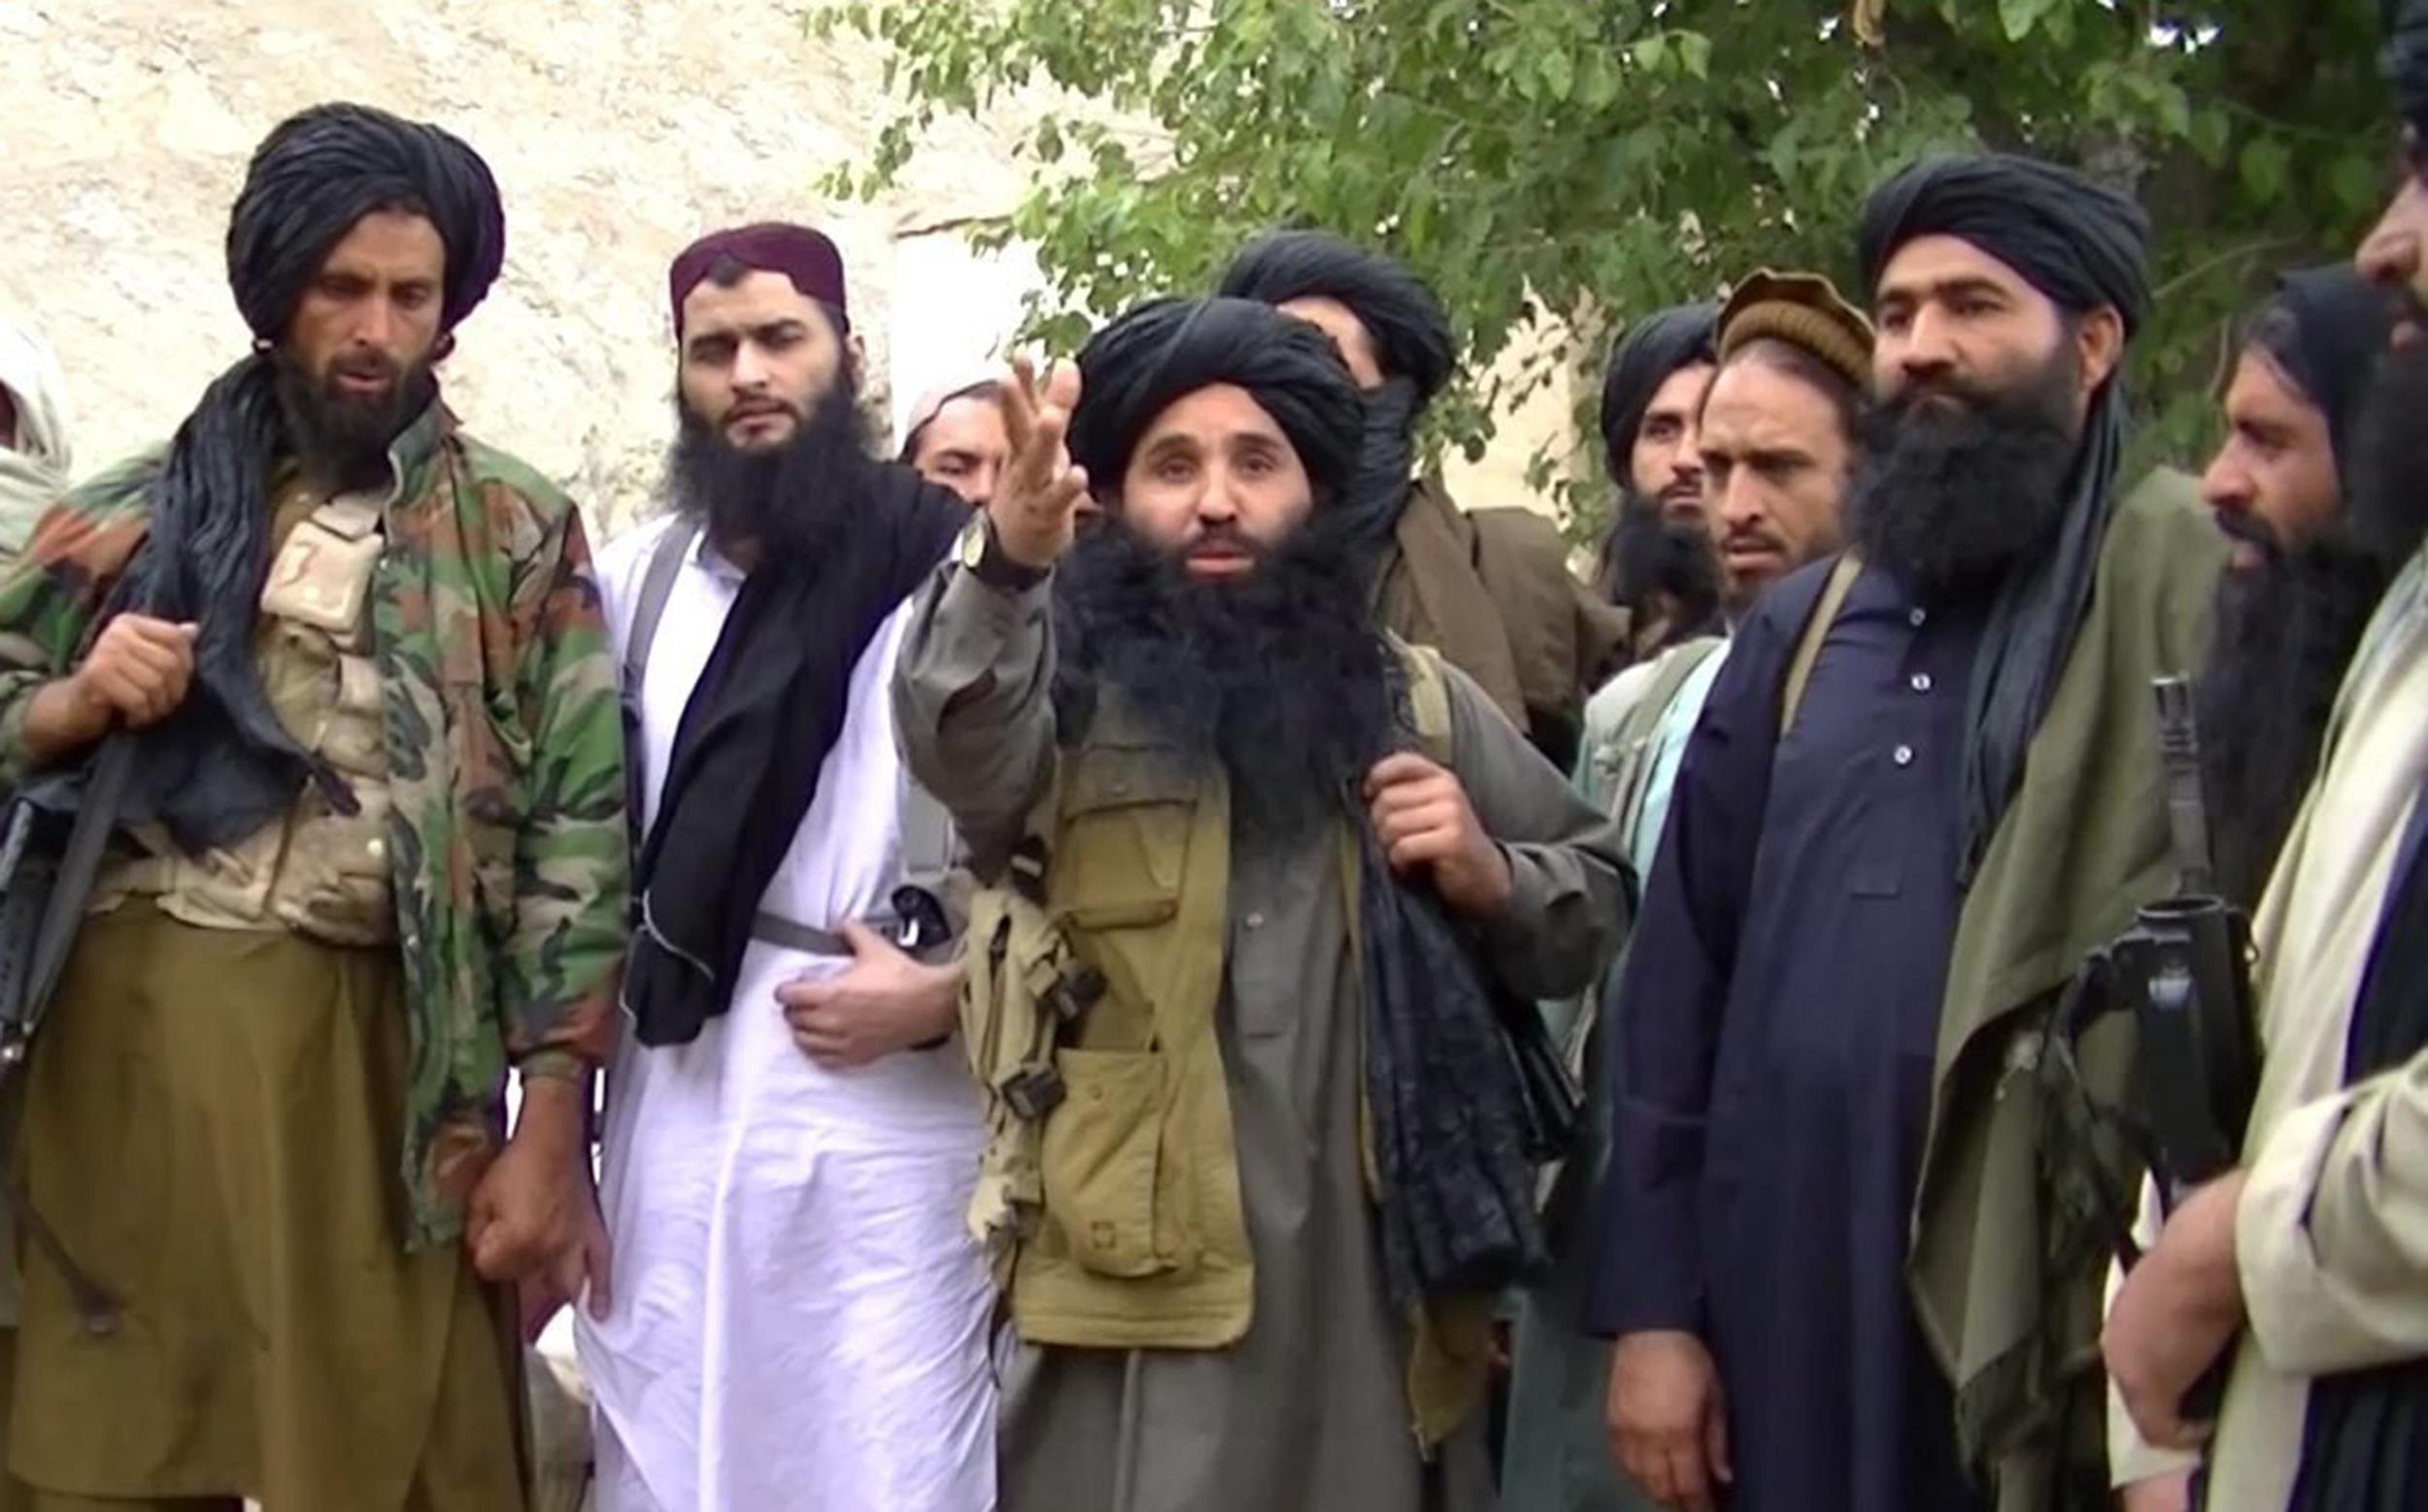 Taliban Chief Behind Pakistan School Massacre Promises More Attacks N280786 on Latest White House Briefing